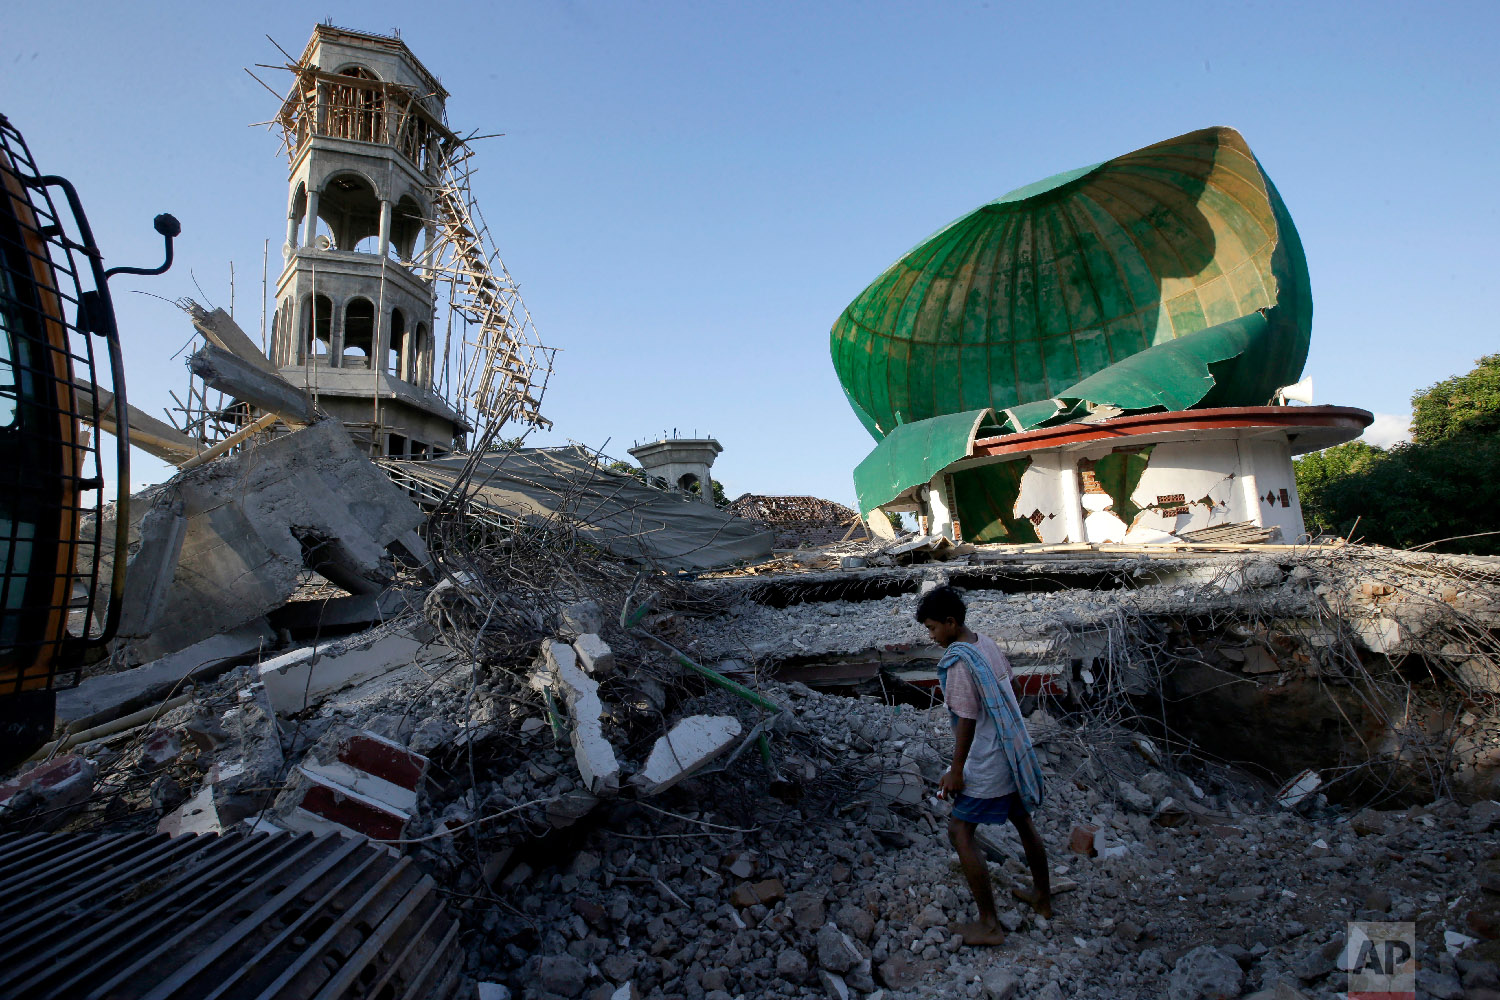 A resident inspects a mosque damaged by an earthquake in North Lombok, Indonesia, on Aug. 7, 2018. (AP Photo/Tatan Syuflana)